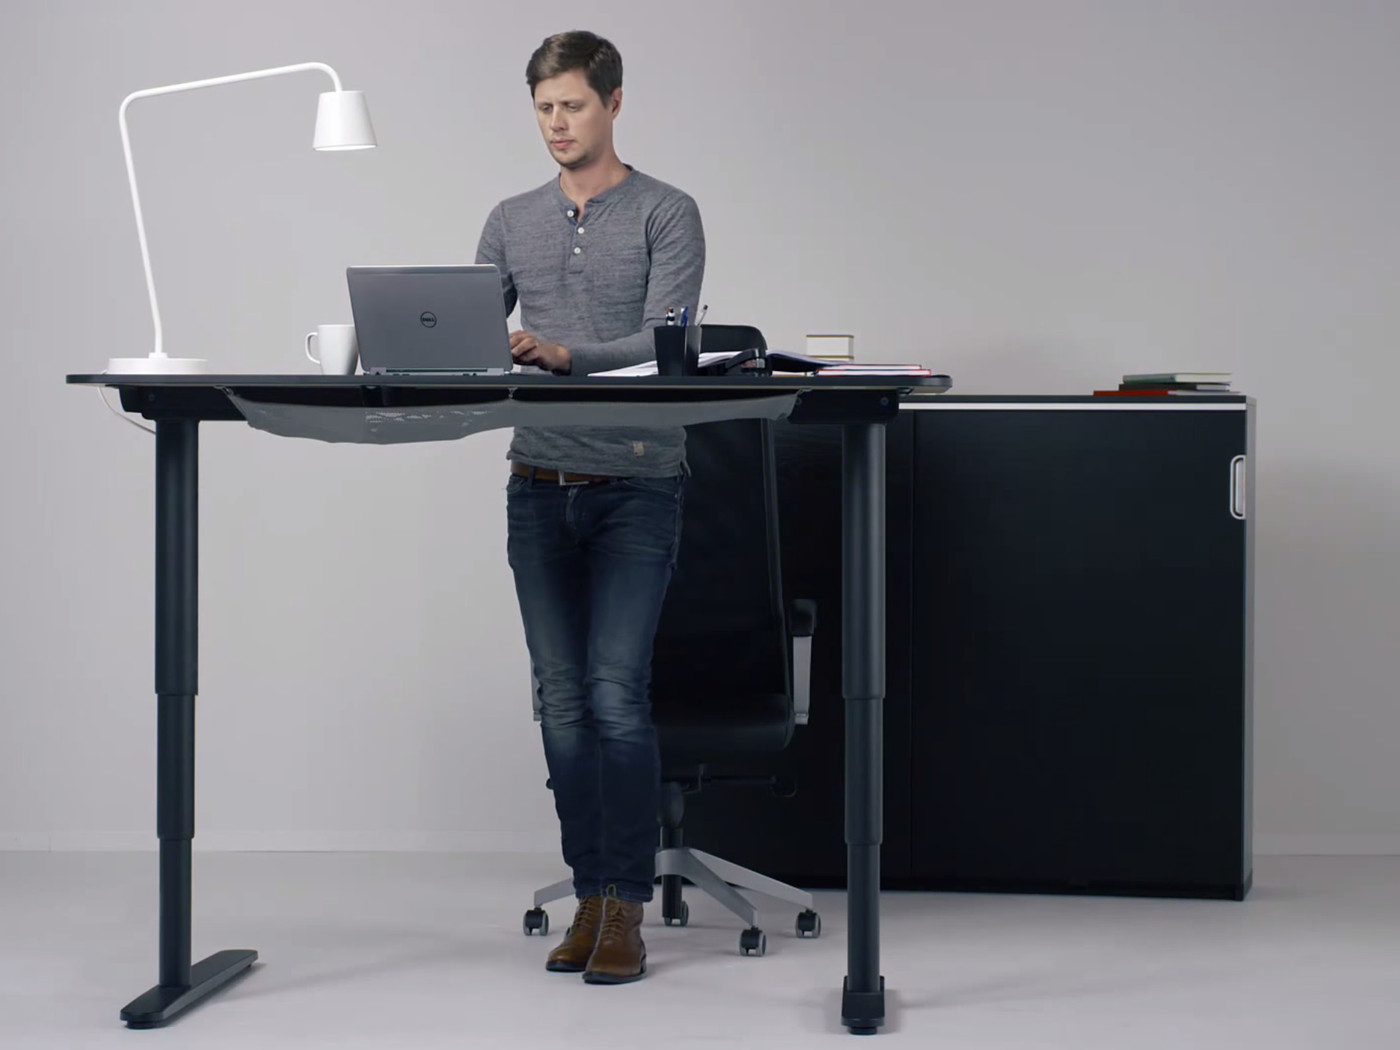 Ikea hopes its new motorized standing desk will get you out of